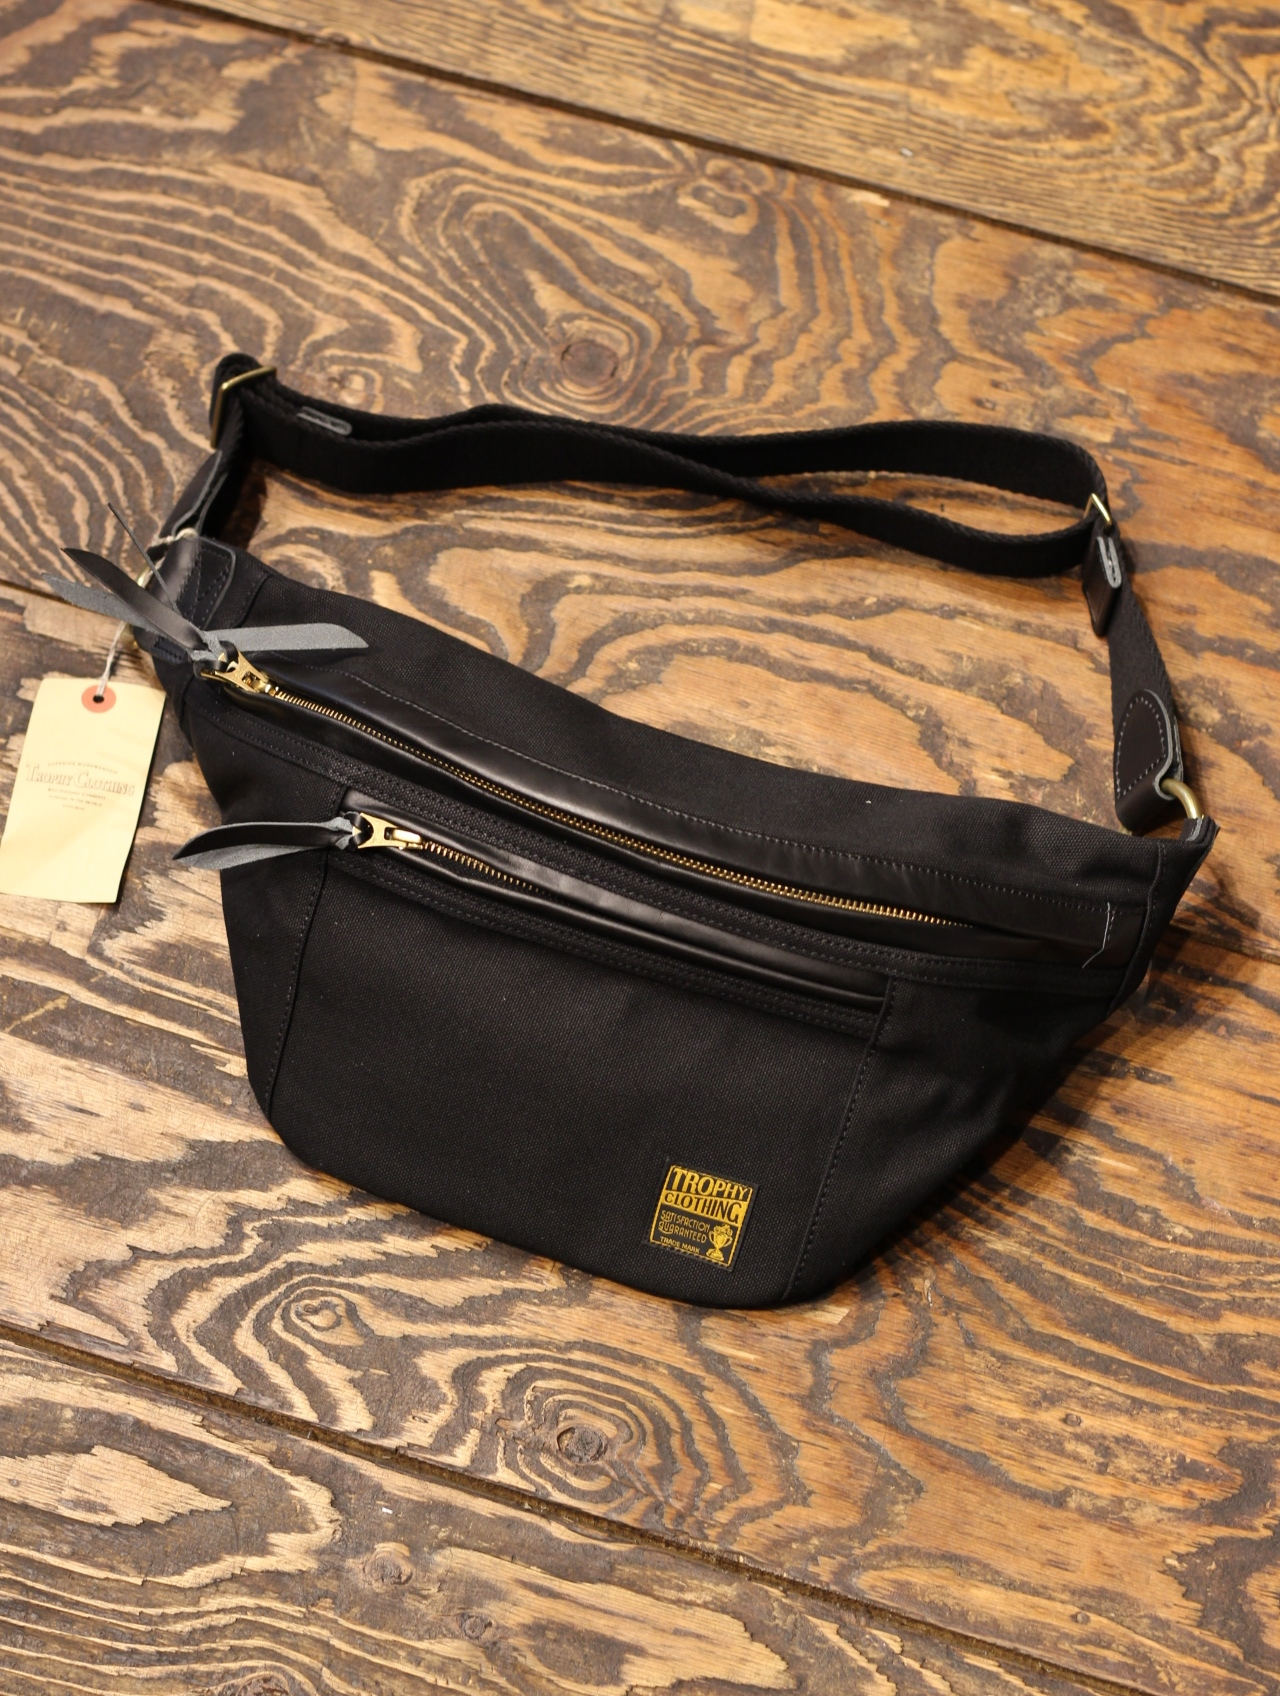 TROPHY CLOTHING  「Day Trip Bag」  ショルダーバッグ